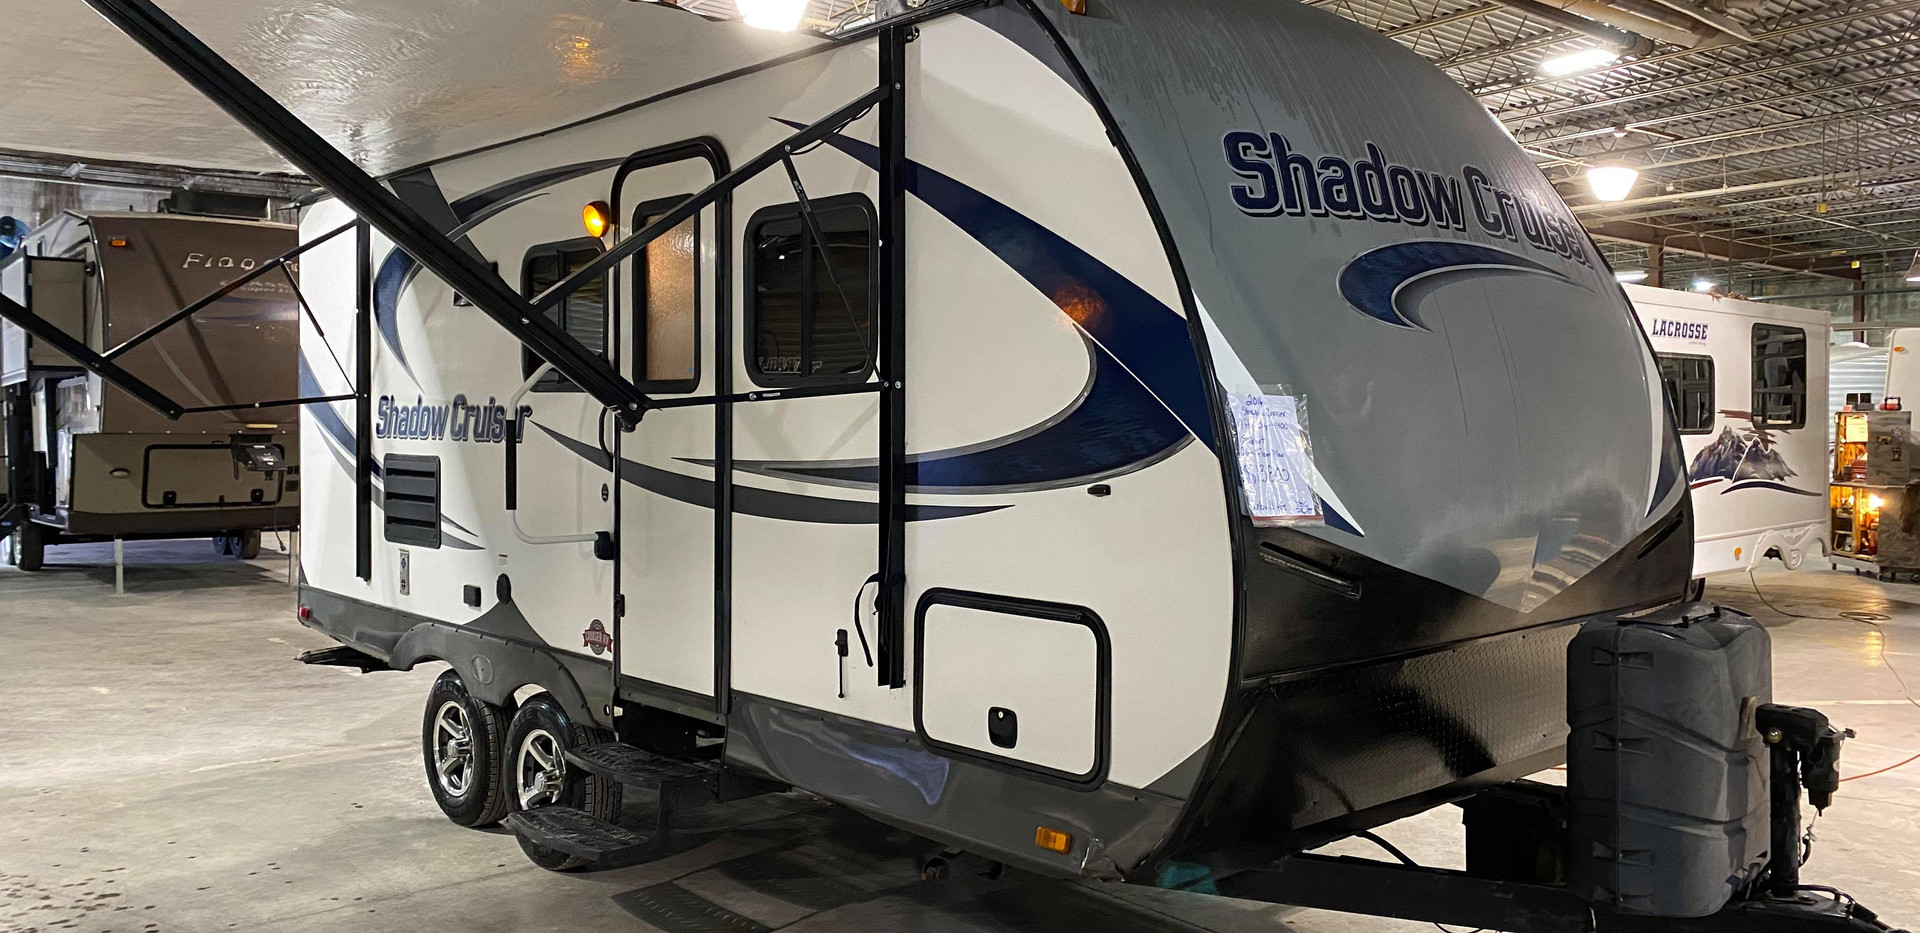 2016 Shadow Cruiser 19ft 1 slide out. Very nice clean camper. Power awing. Queen size bed up front. Hide a bed couch. Big bathroom in rear. Corner shower. Lots of cabinets and storage. Dry wieght is 4,400 pounds. Pulls easy. Rebuilt Title $12,000